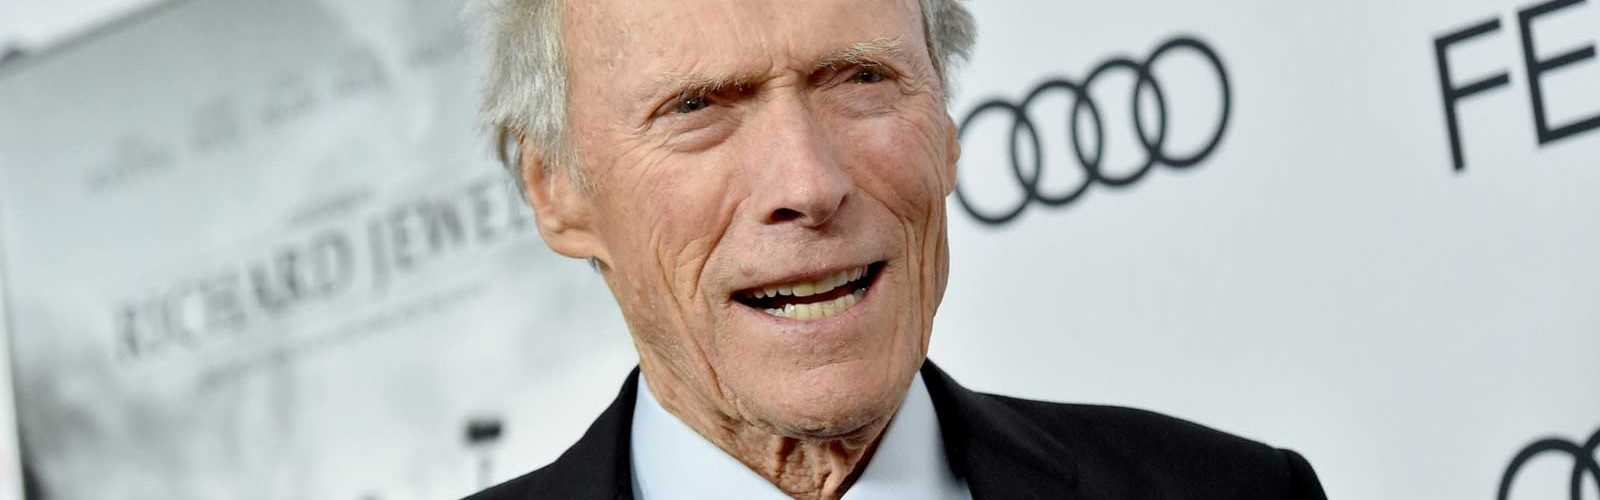 Clint Eastwood's Net Worth